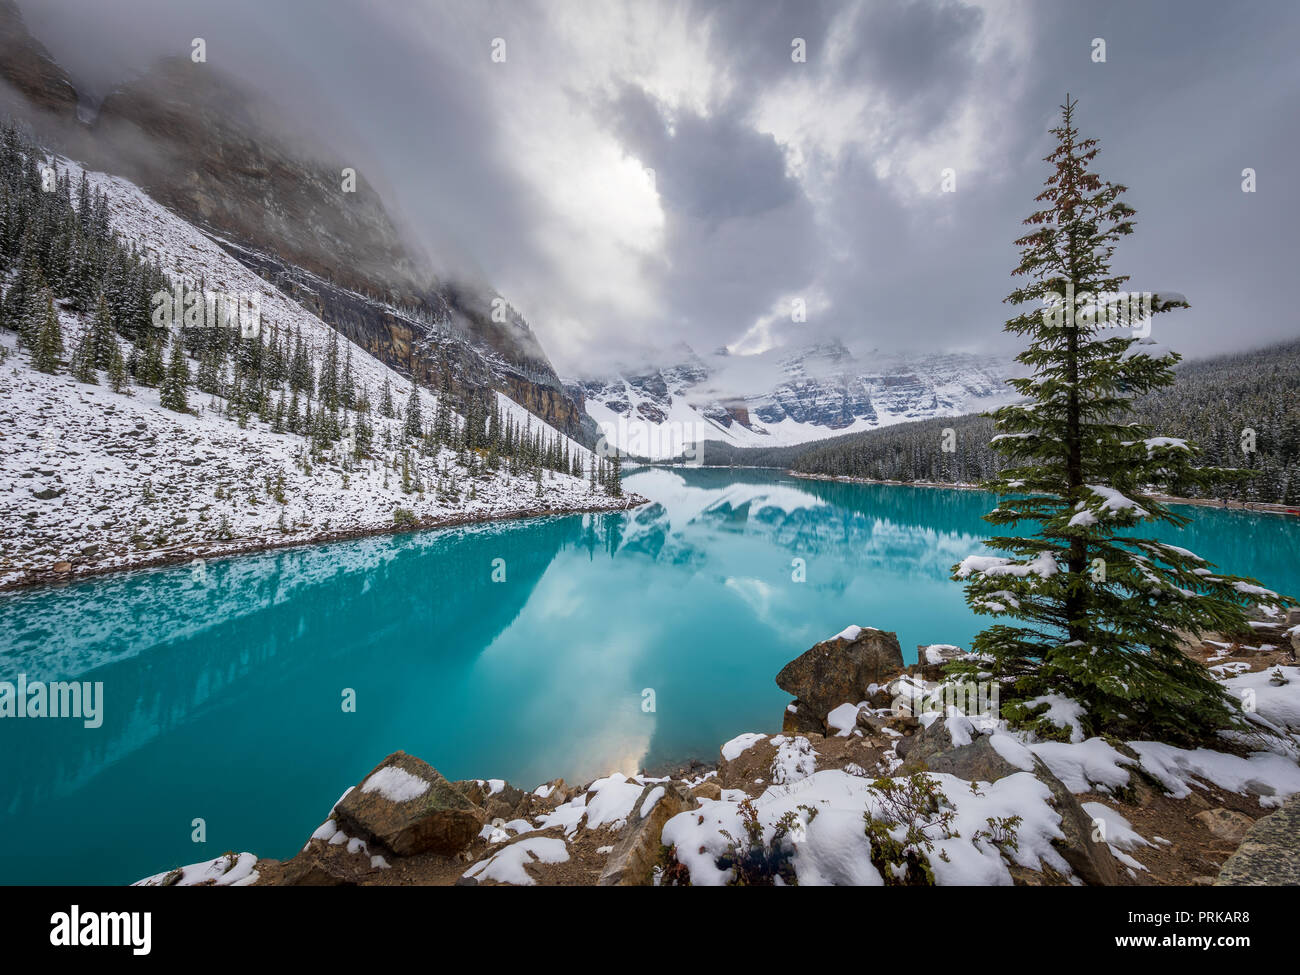 Moraine Lake Is A Glacially Fed Lake In Banff National Park